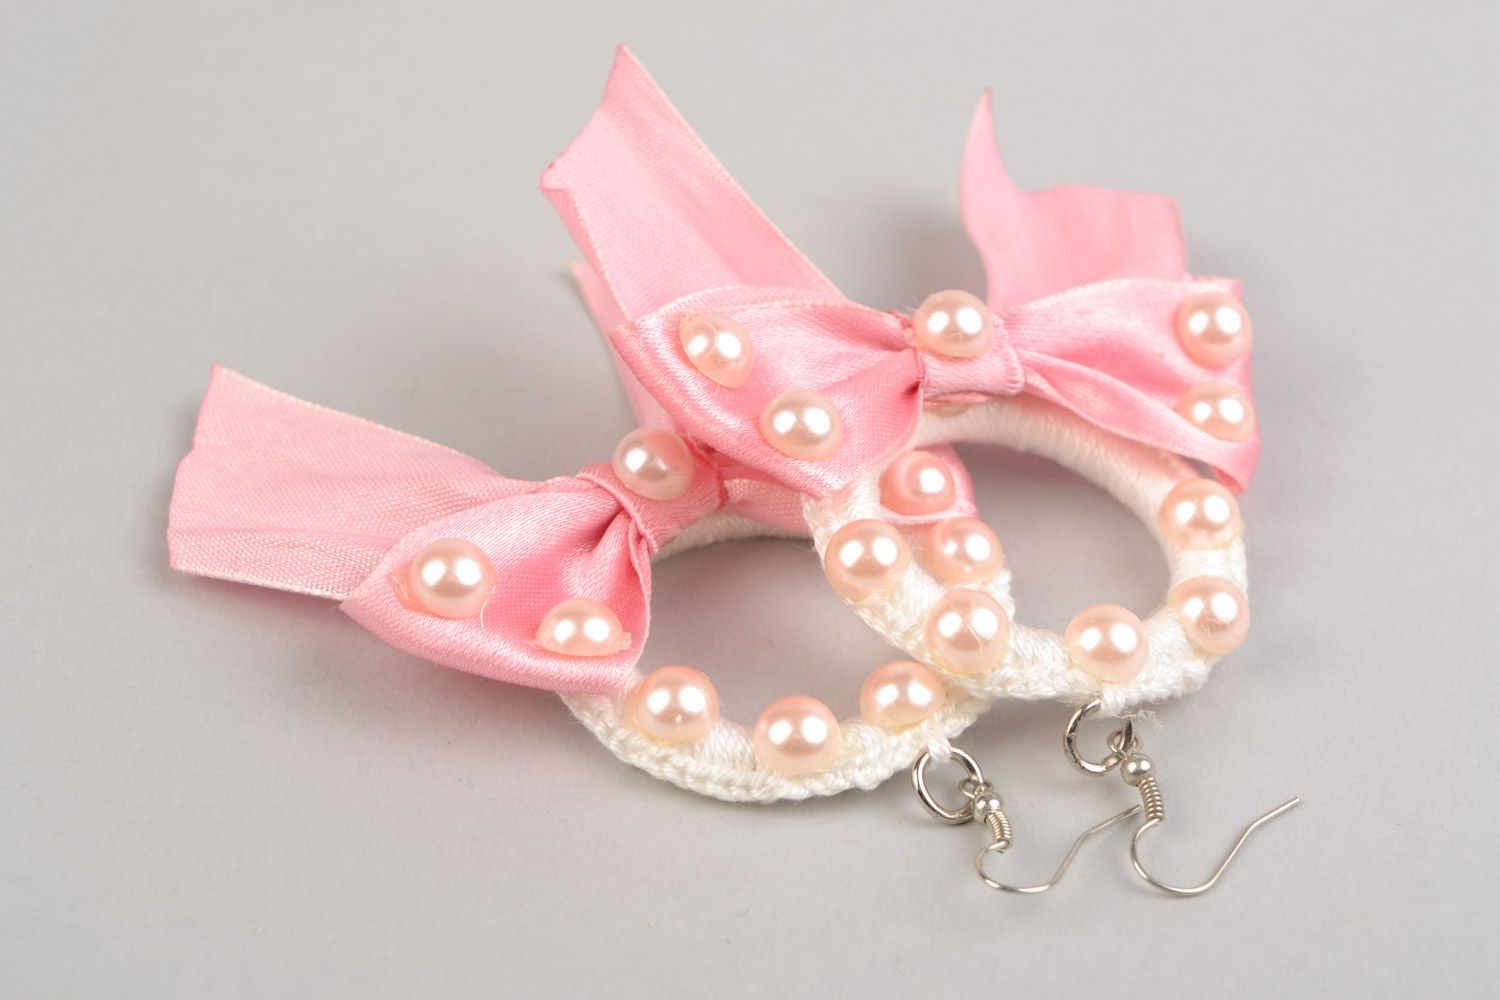 Braided earrings made of plastic rings and threads with pink ribbons present for girlfriend photo 5